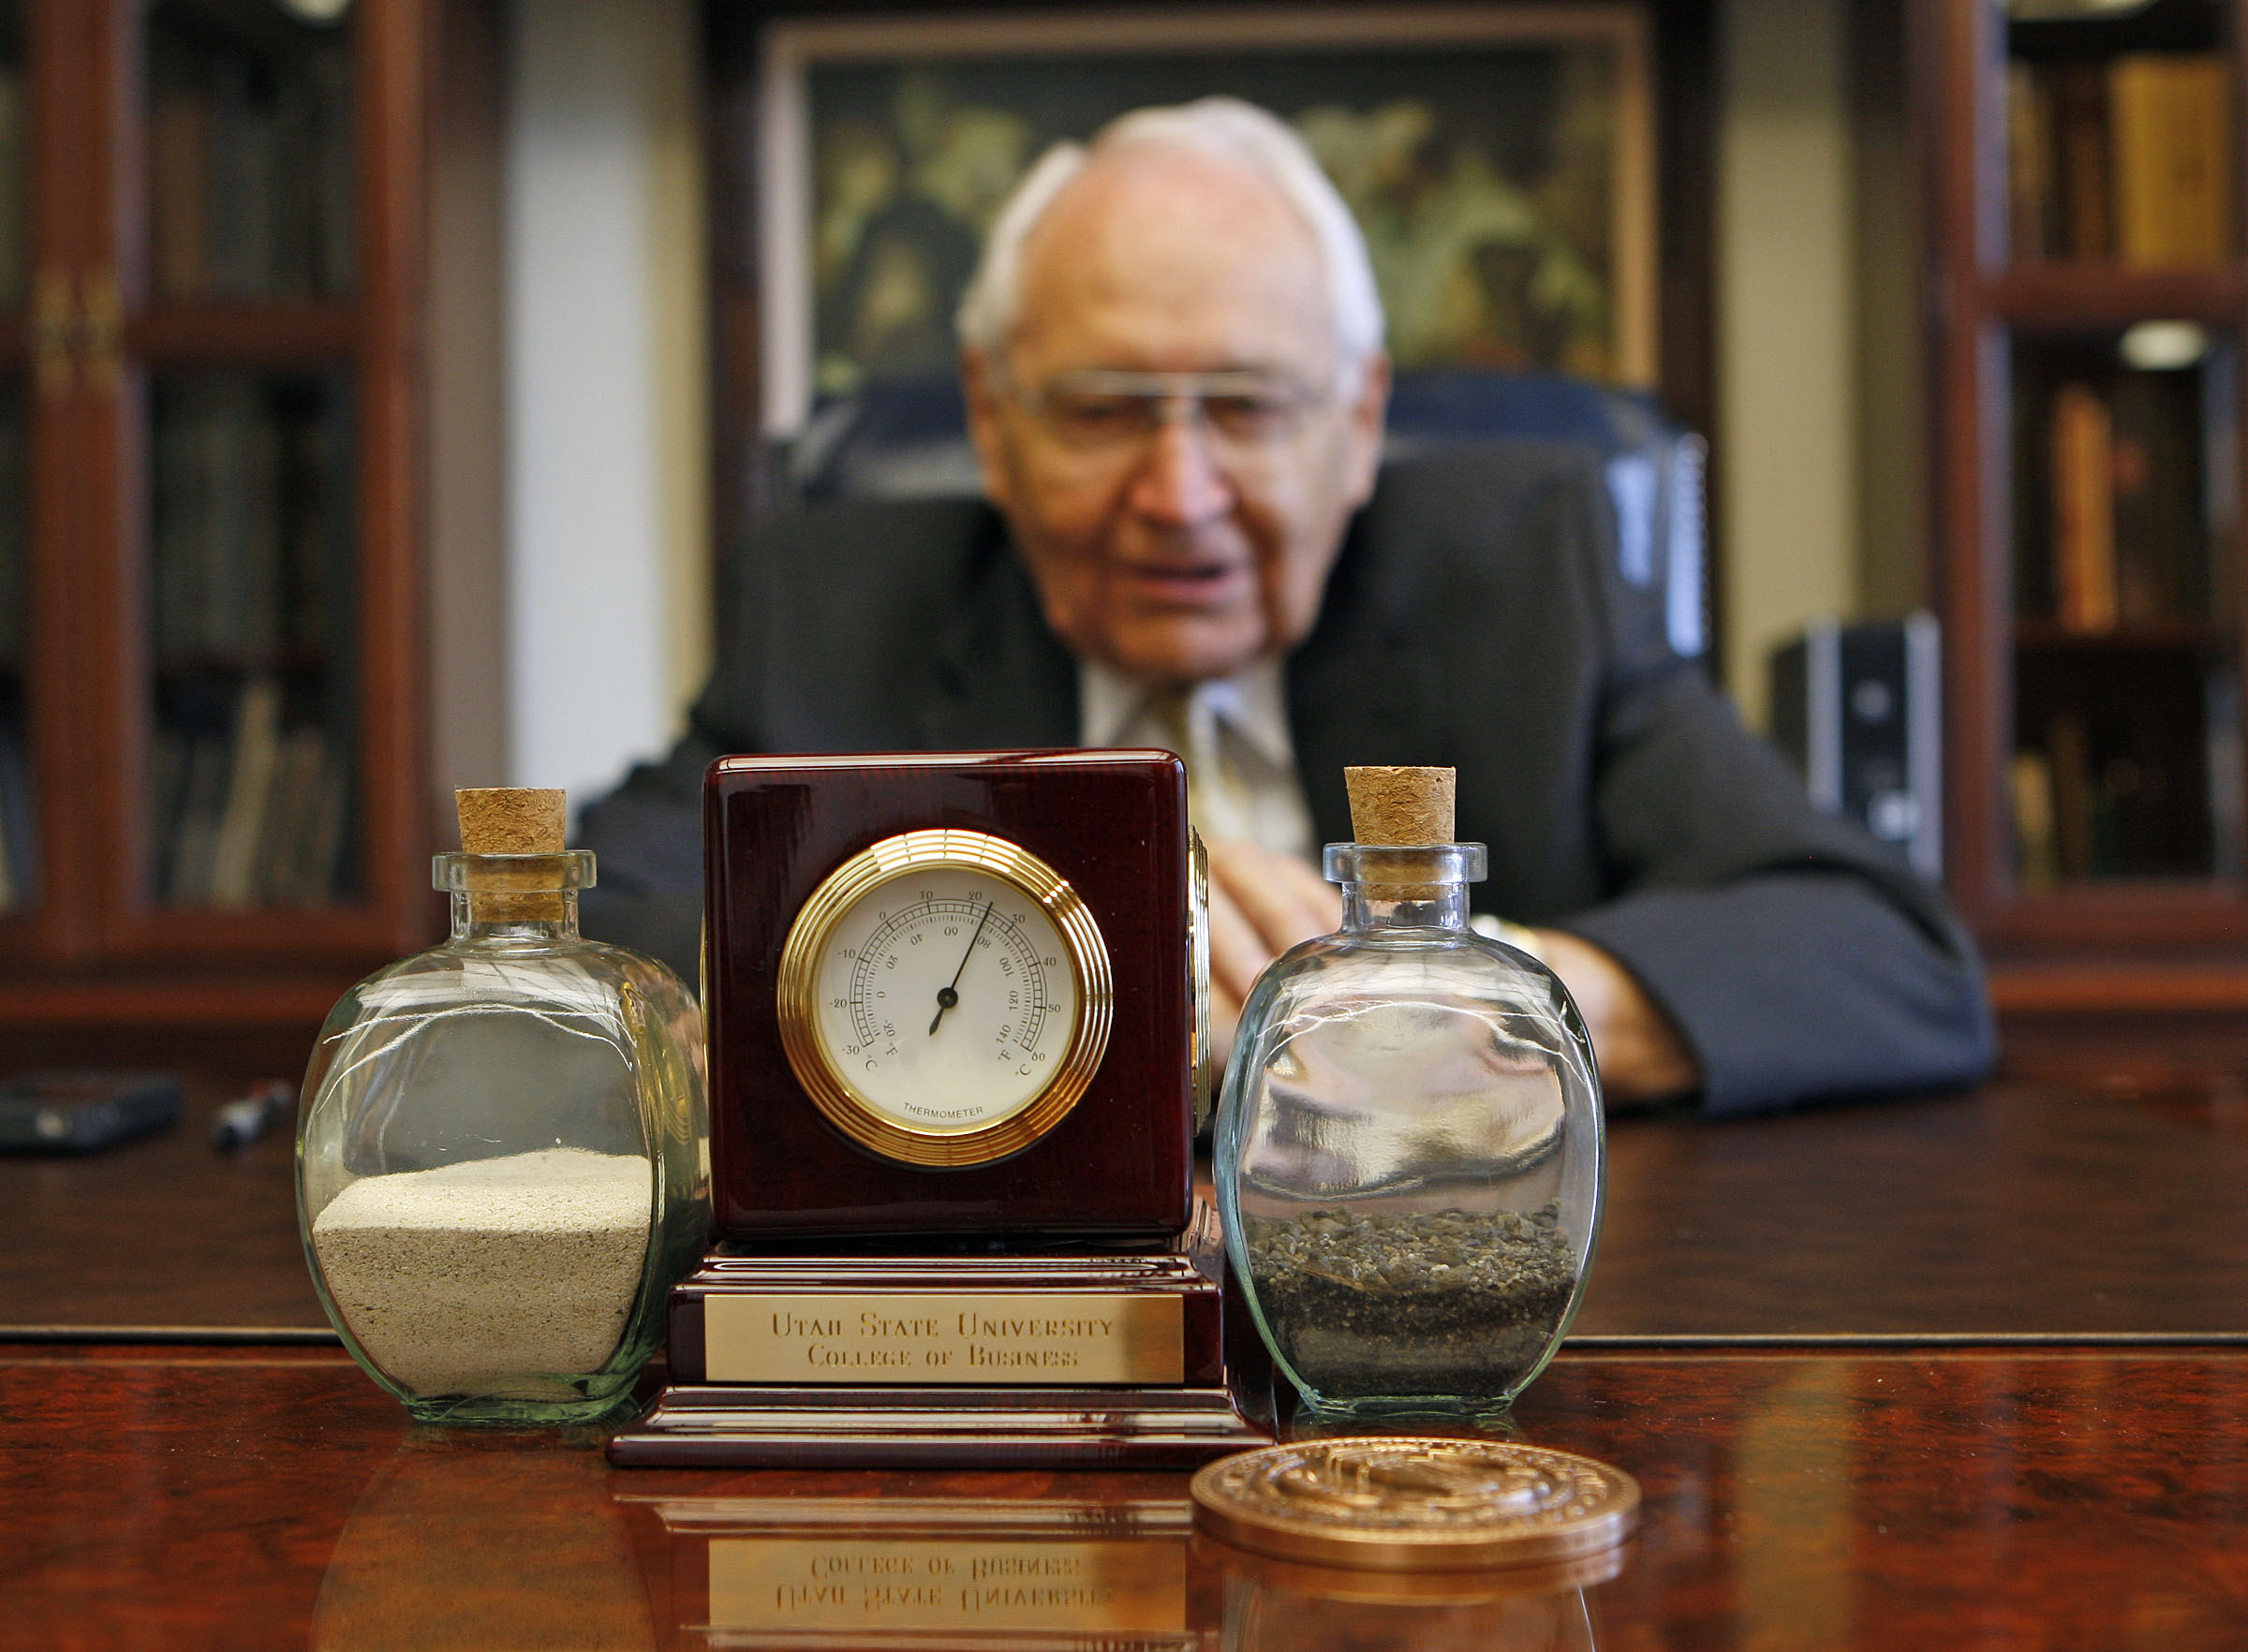 Elder L. Tom Perry at his desk where he keeps some sand from Saipan, left, and coral from Iwo Jima, Tuesday, July 31, 2012, in Salt Lake City, Utah.